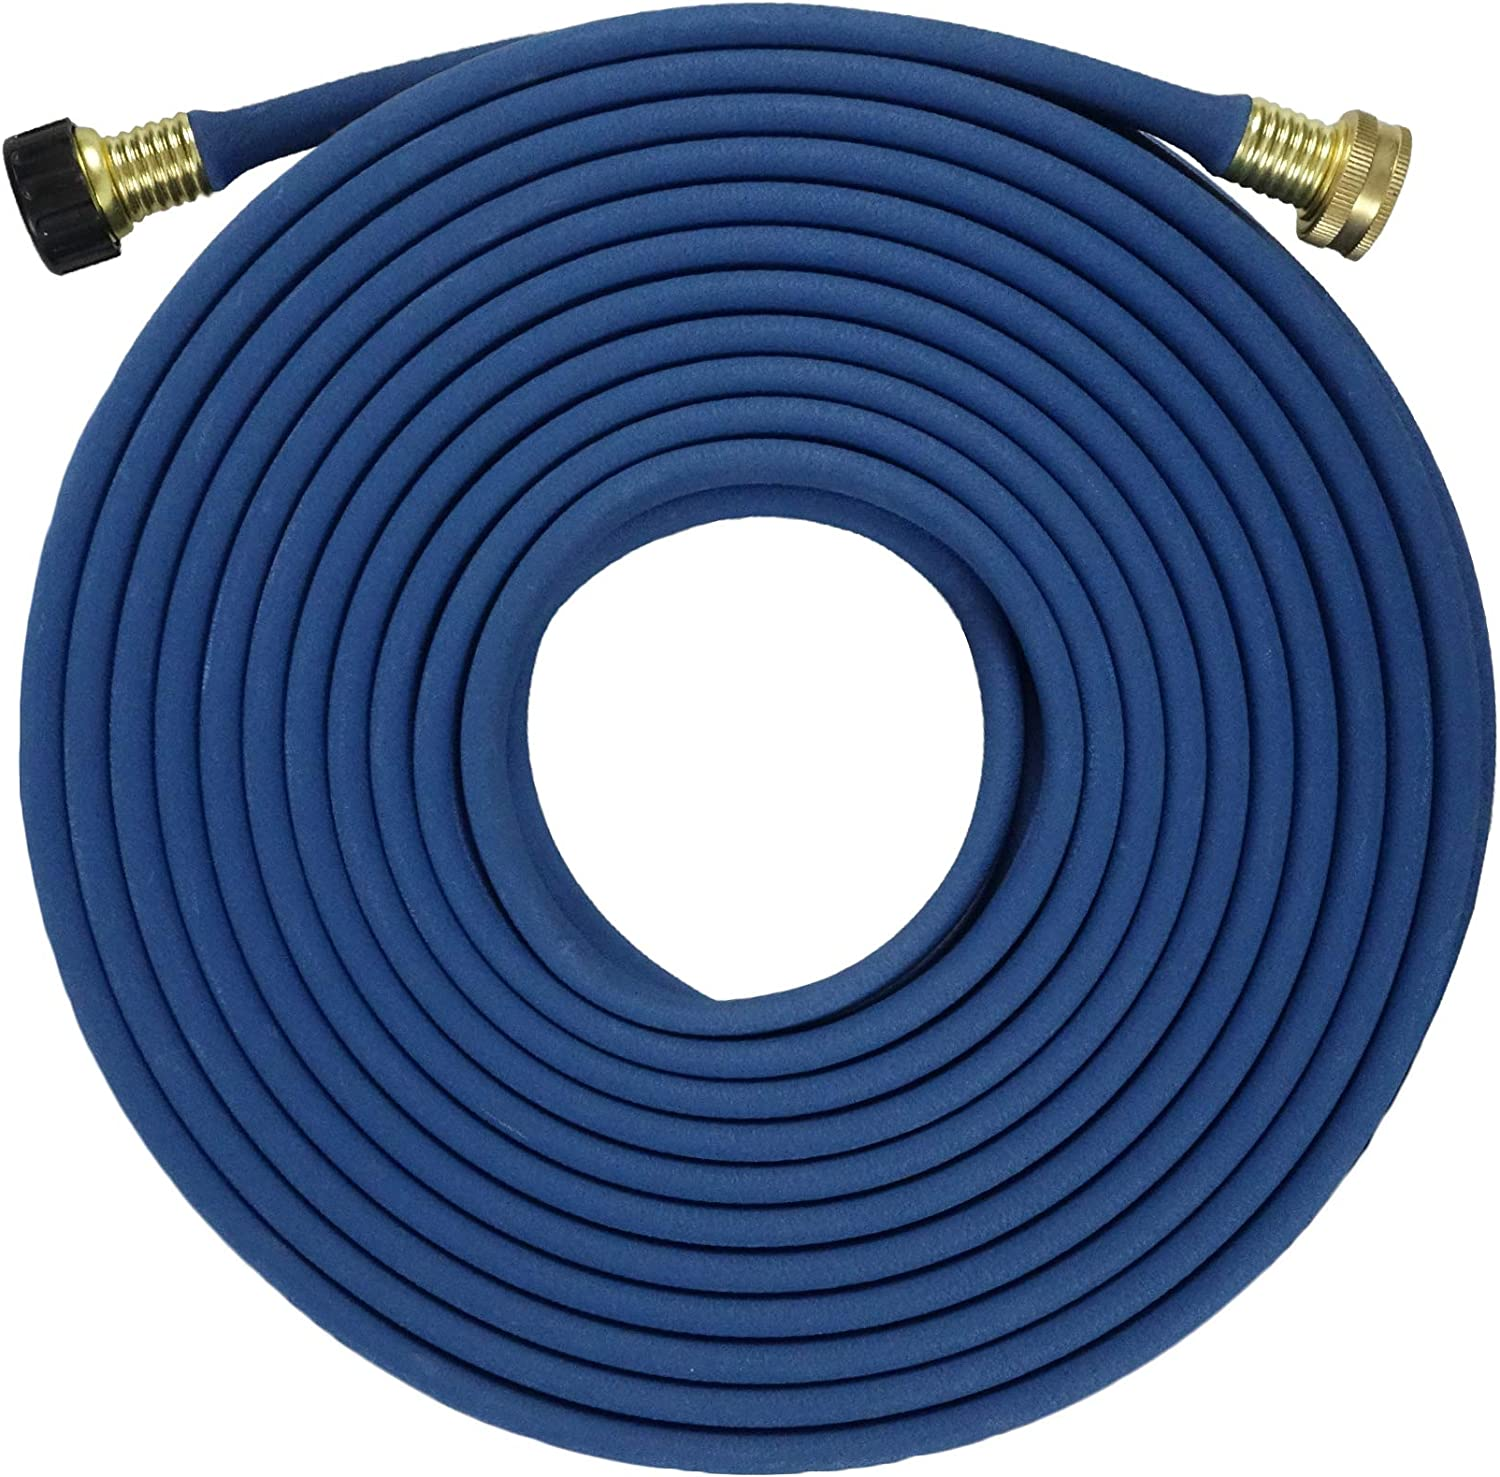 FLORIAX Garden Flat Soaker Hose 1/2 in x 50 ft, More Water Leakage, Heavy Duty, Metal Hose Connector Ends, Save 80% Water Great for Flower beds, Seedling, Landscaping